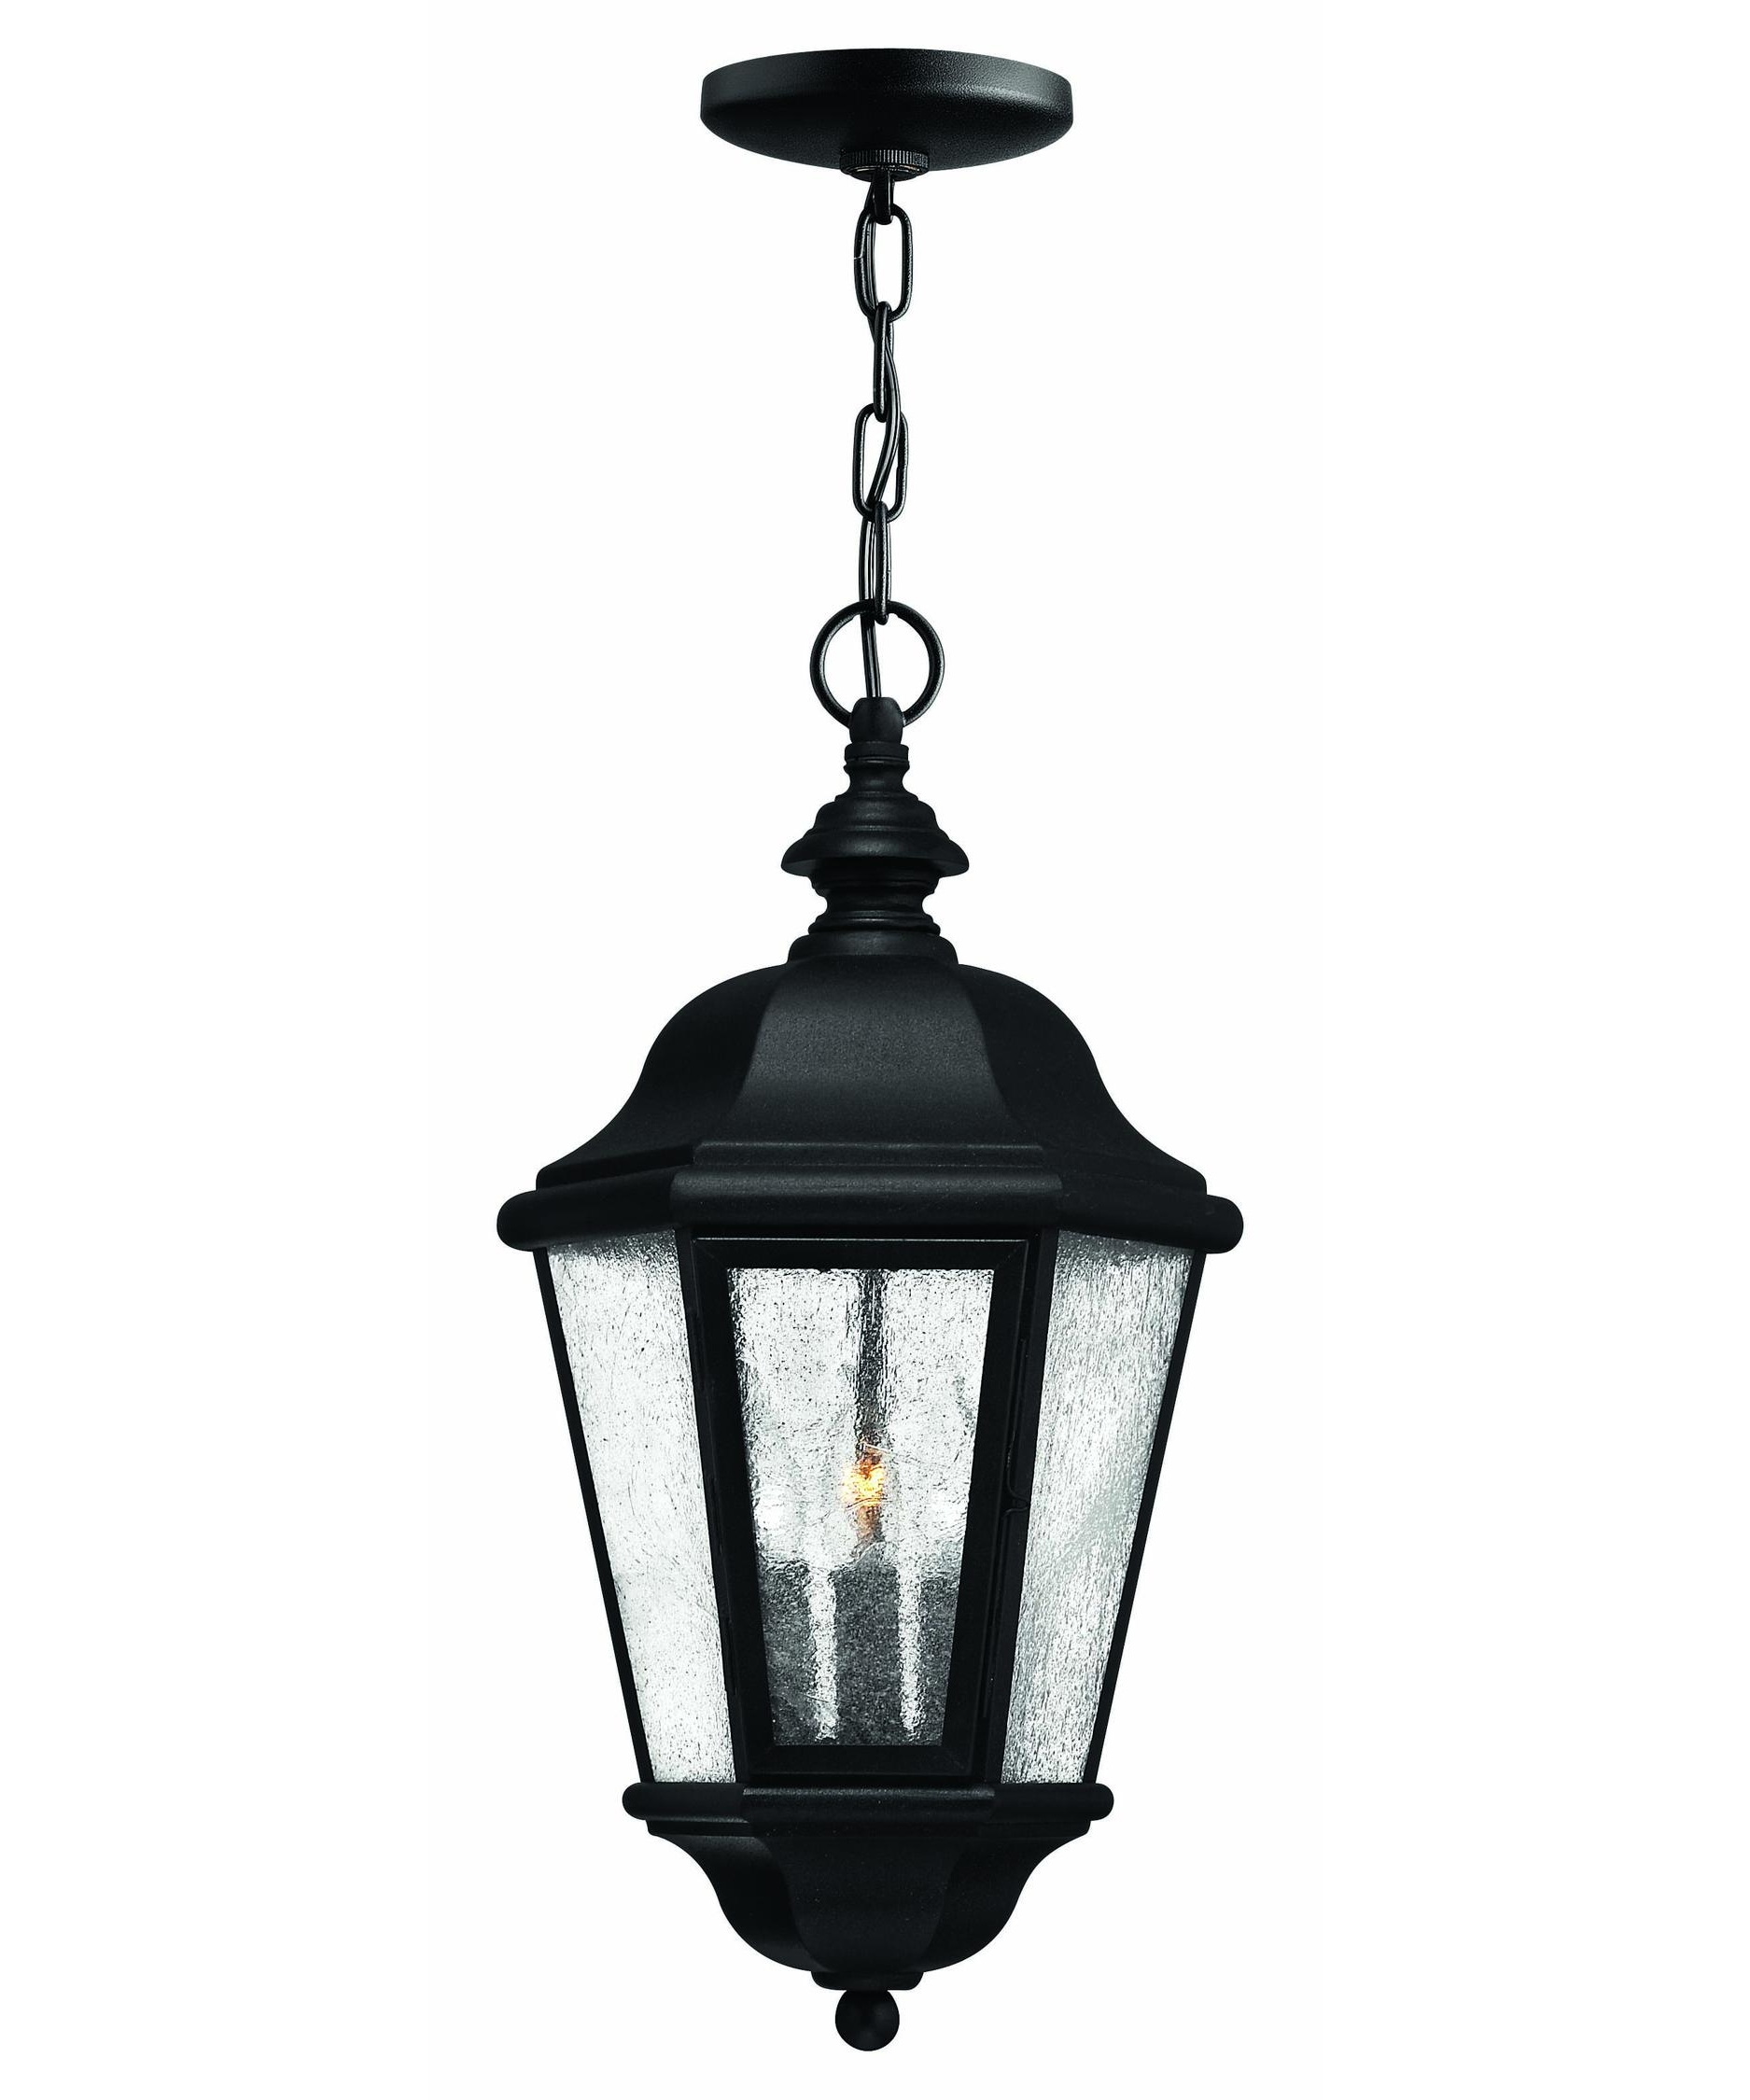 Hinkley Lighting 1672 Edgewater 10 Inch Wide 3 Light Outdoor Hanging With Regard To Most Recently Released Outdoor Hanging Glass Lights (Gallery 5 of 20)